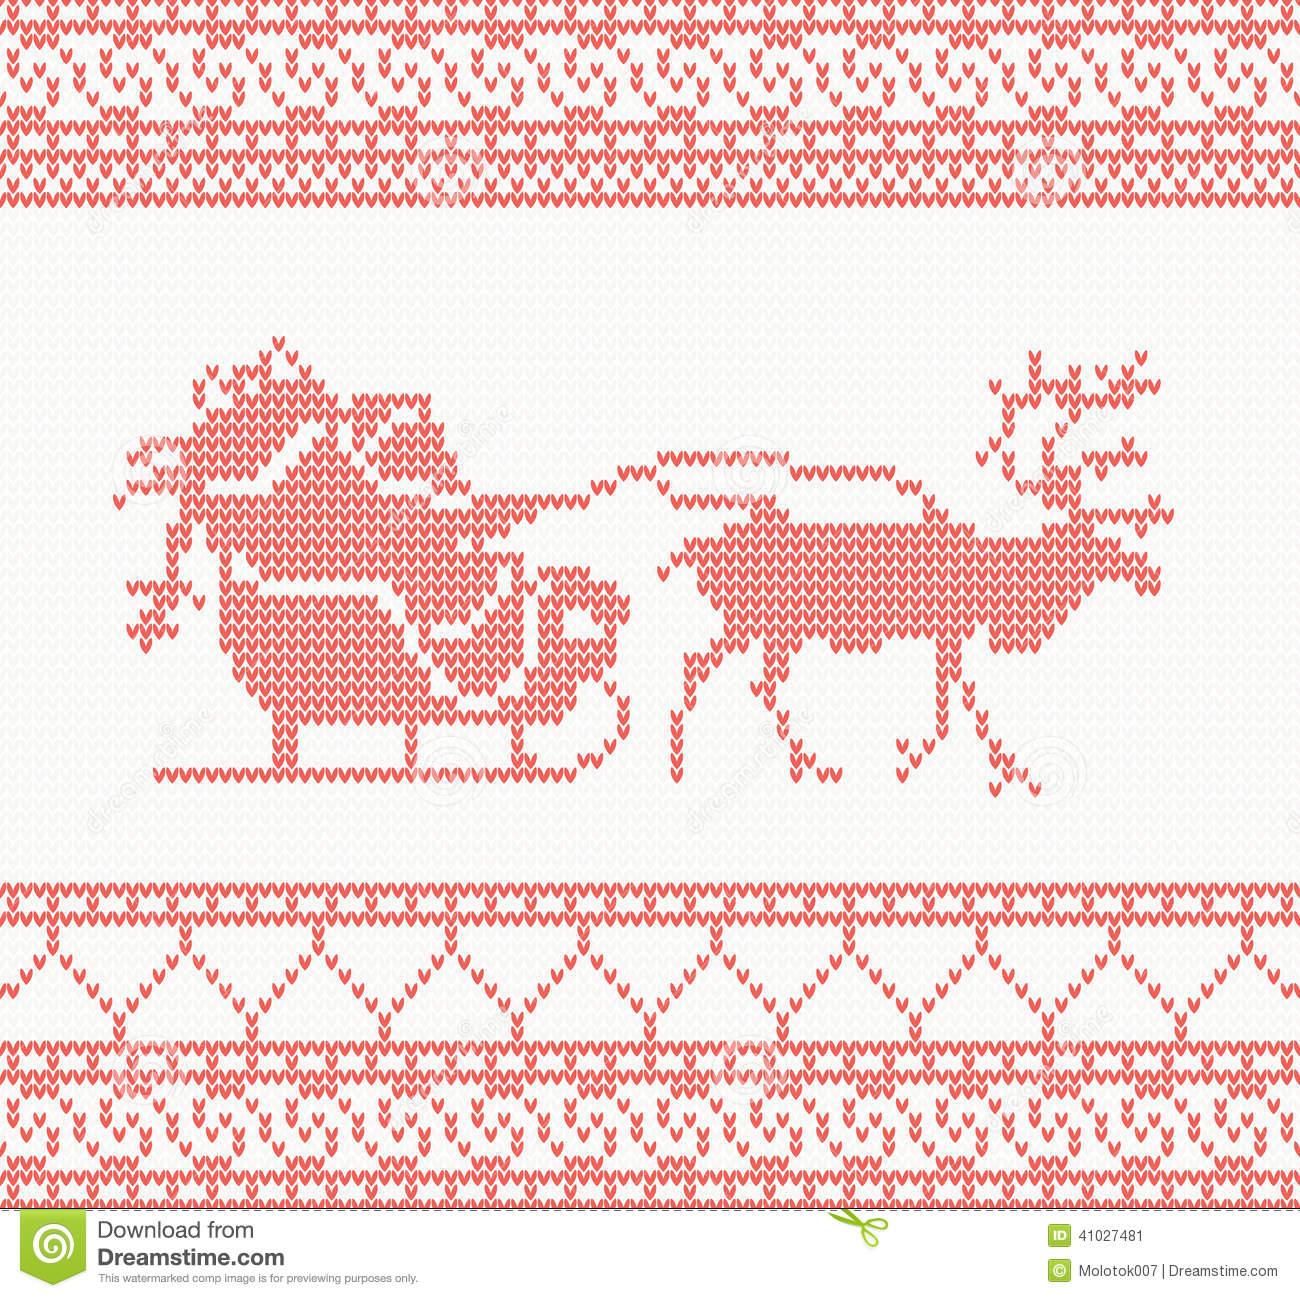 Knitted Pattern With Santa Claus Stock Vector - Image: 41027481